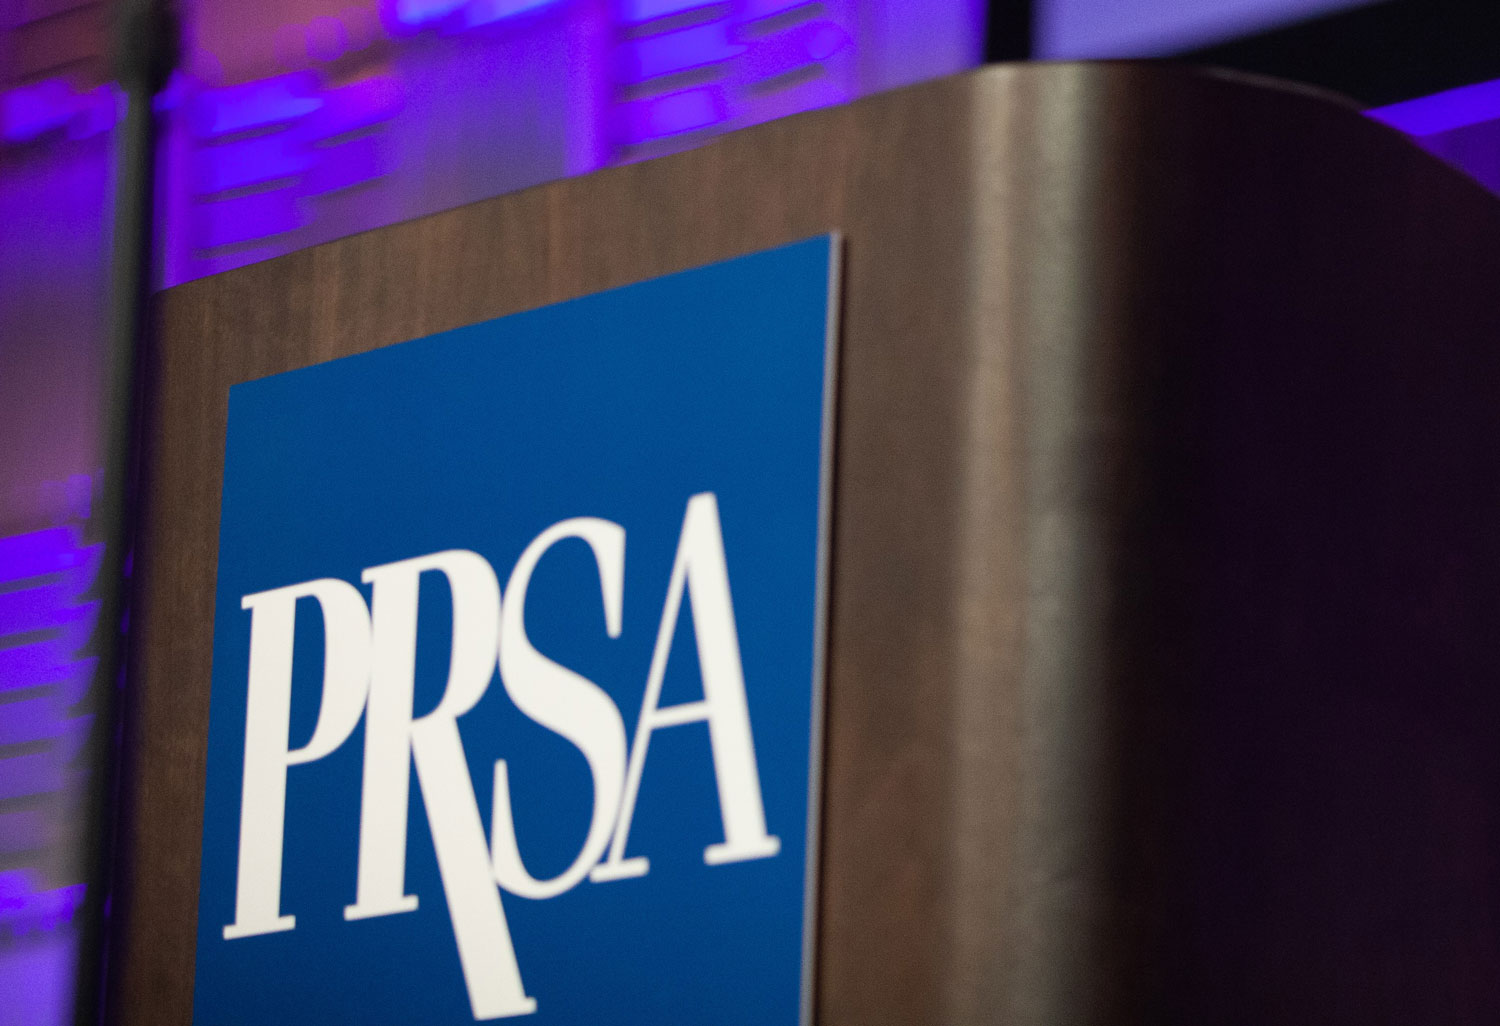 prsa-podium-july-2020-cropped